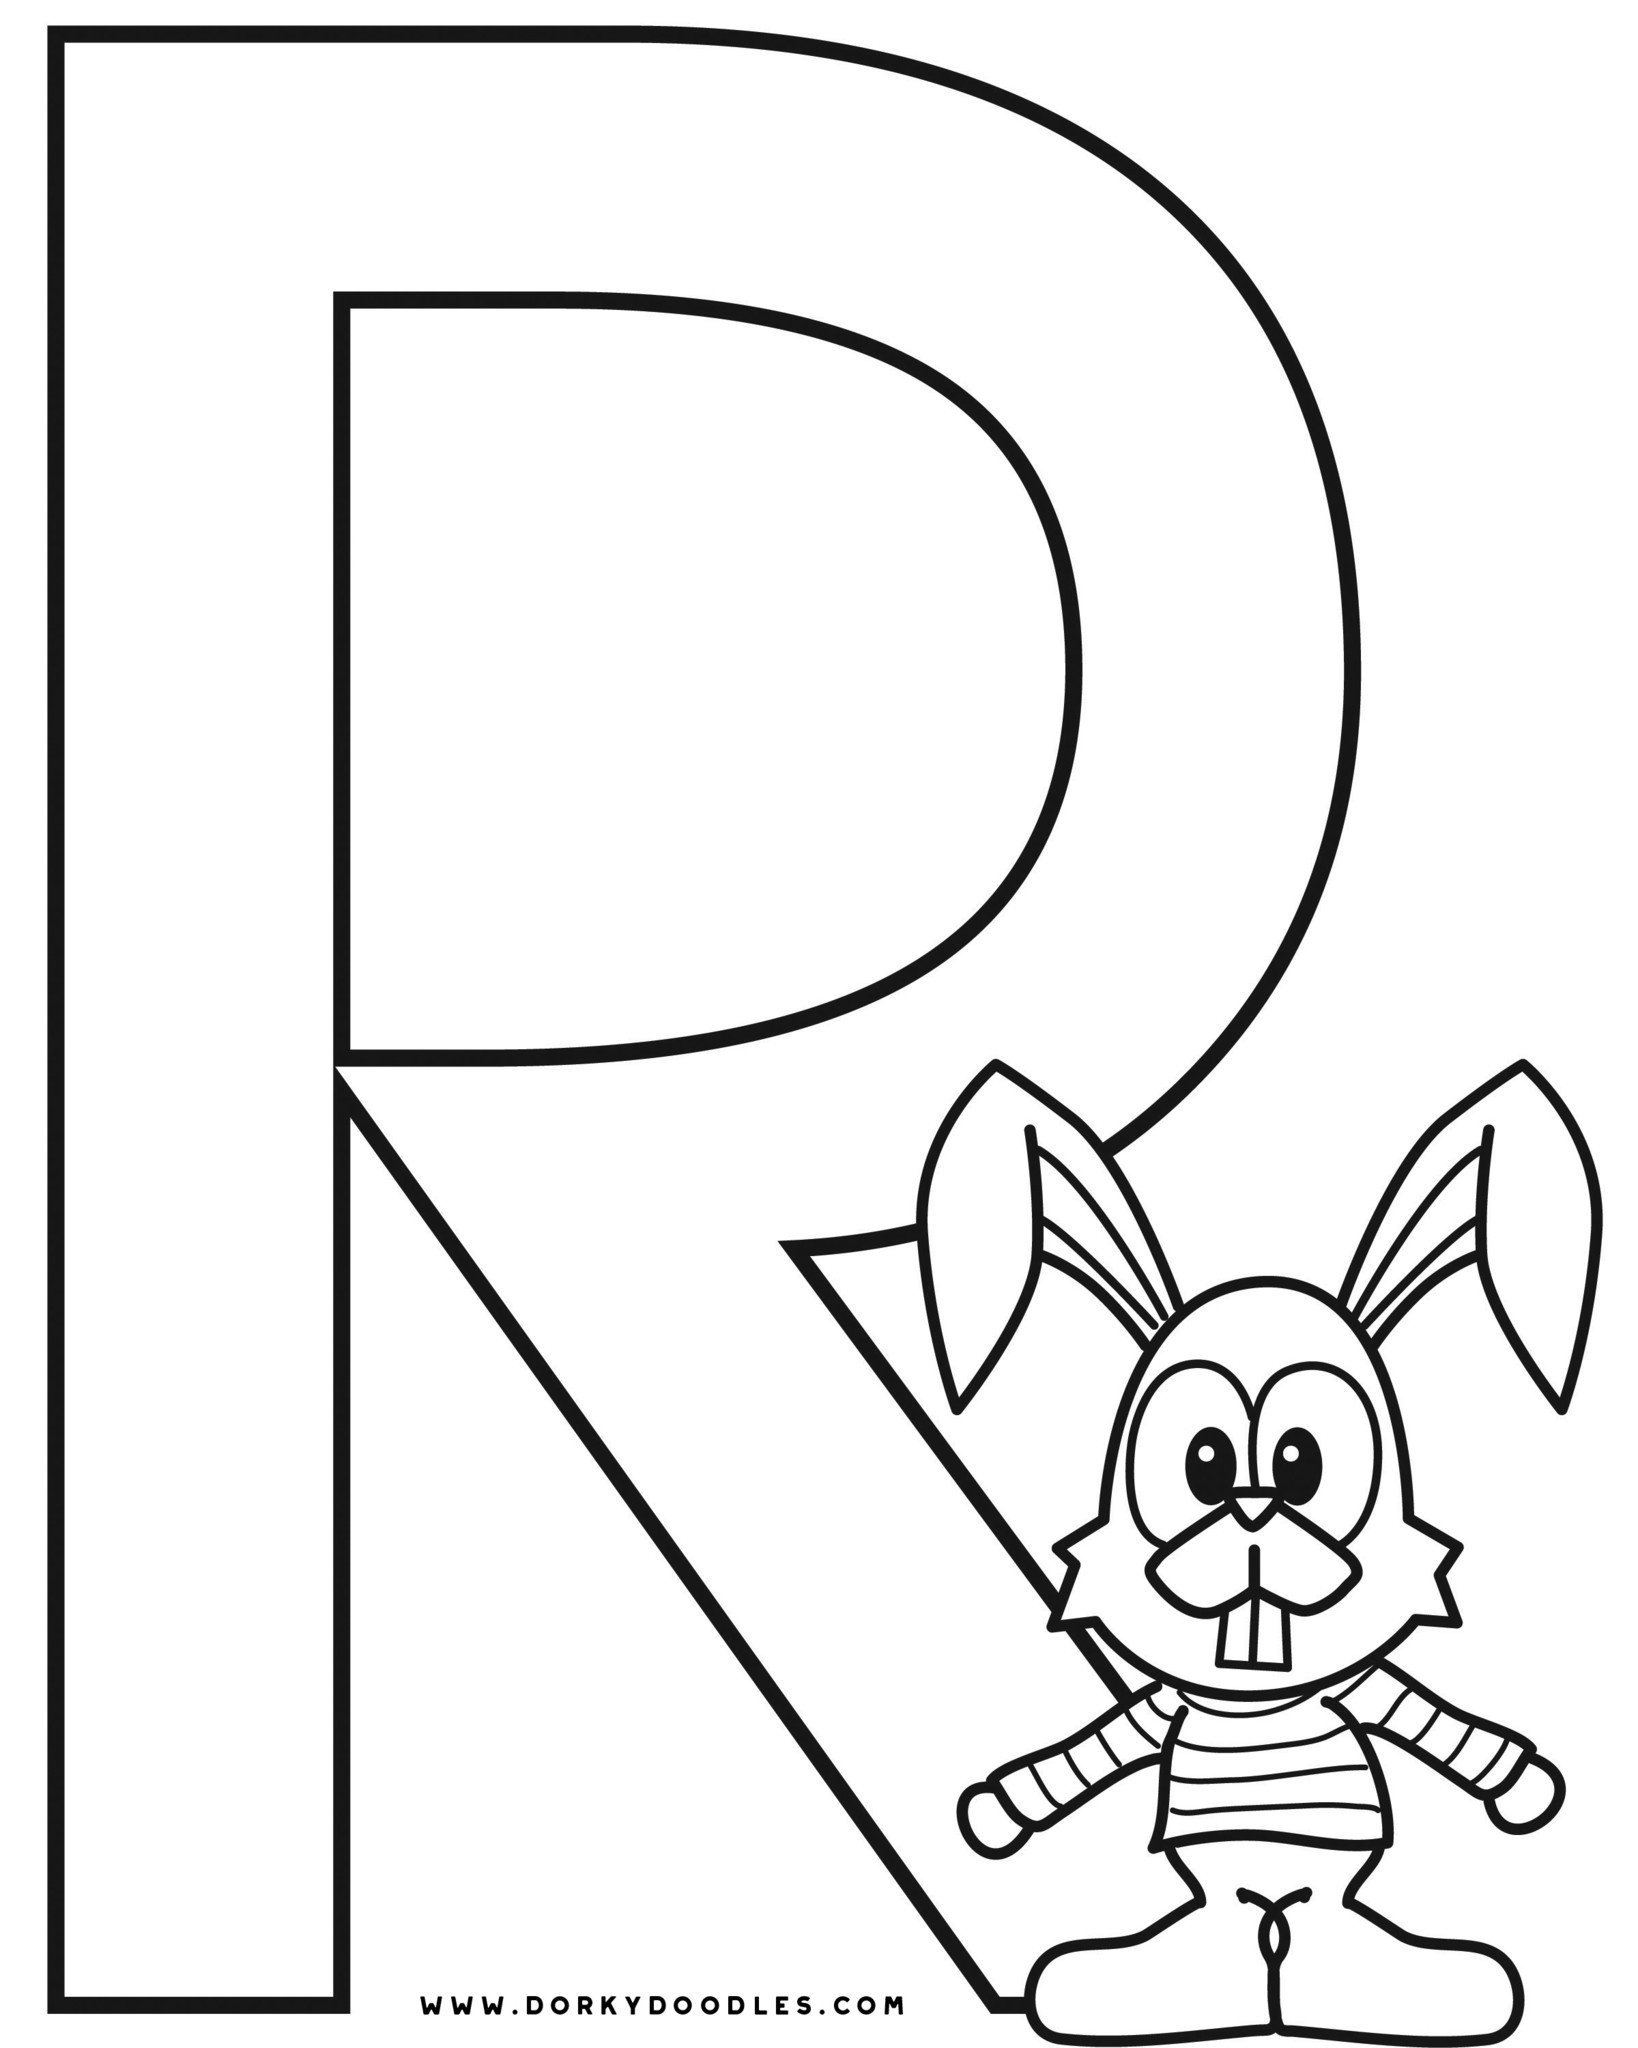 r coloring pictures get this letter r coloring pages r2t19 pictures coloring r